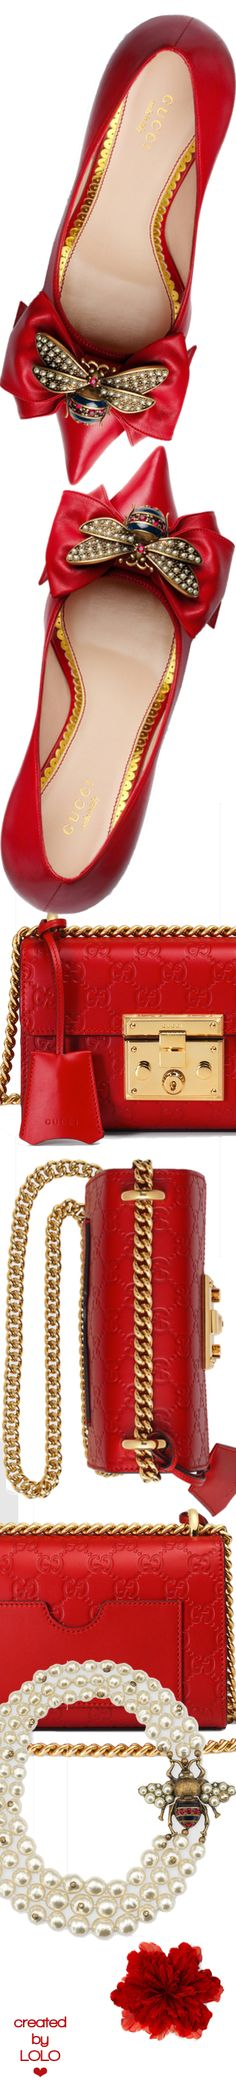 Shop the Gucci Official Website. Browse the latest collections, explore the campaigns and discover our online assortment of clothing and accessories. Fancy Shoes, Pretty Shoes, Gucci Baby, Red Handbag, Gucci Accessories, Black White Red, Classy And Fabulous, Luxury Shoes, Lady In Red